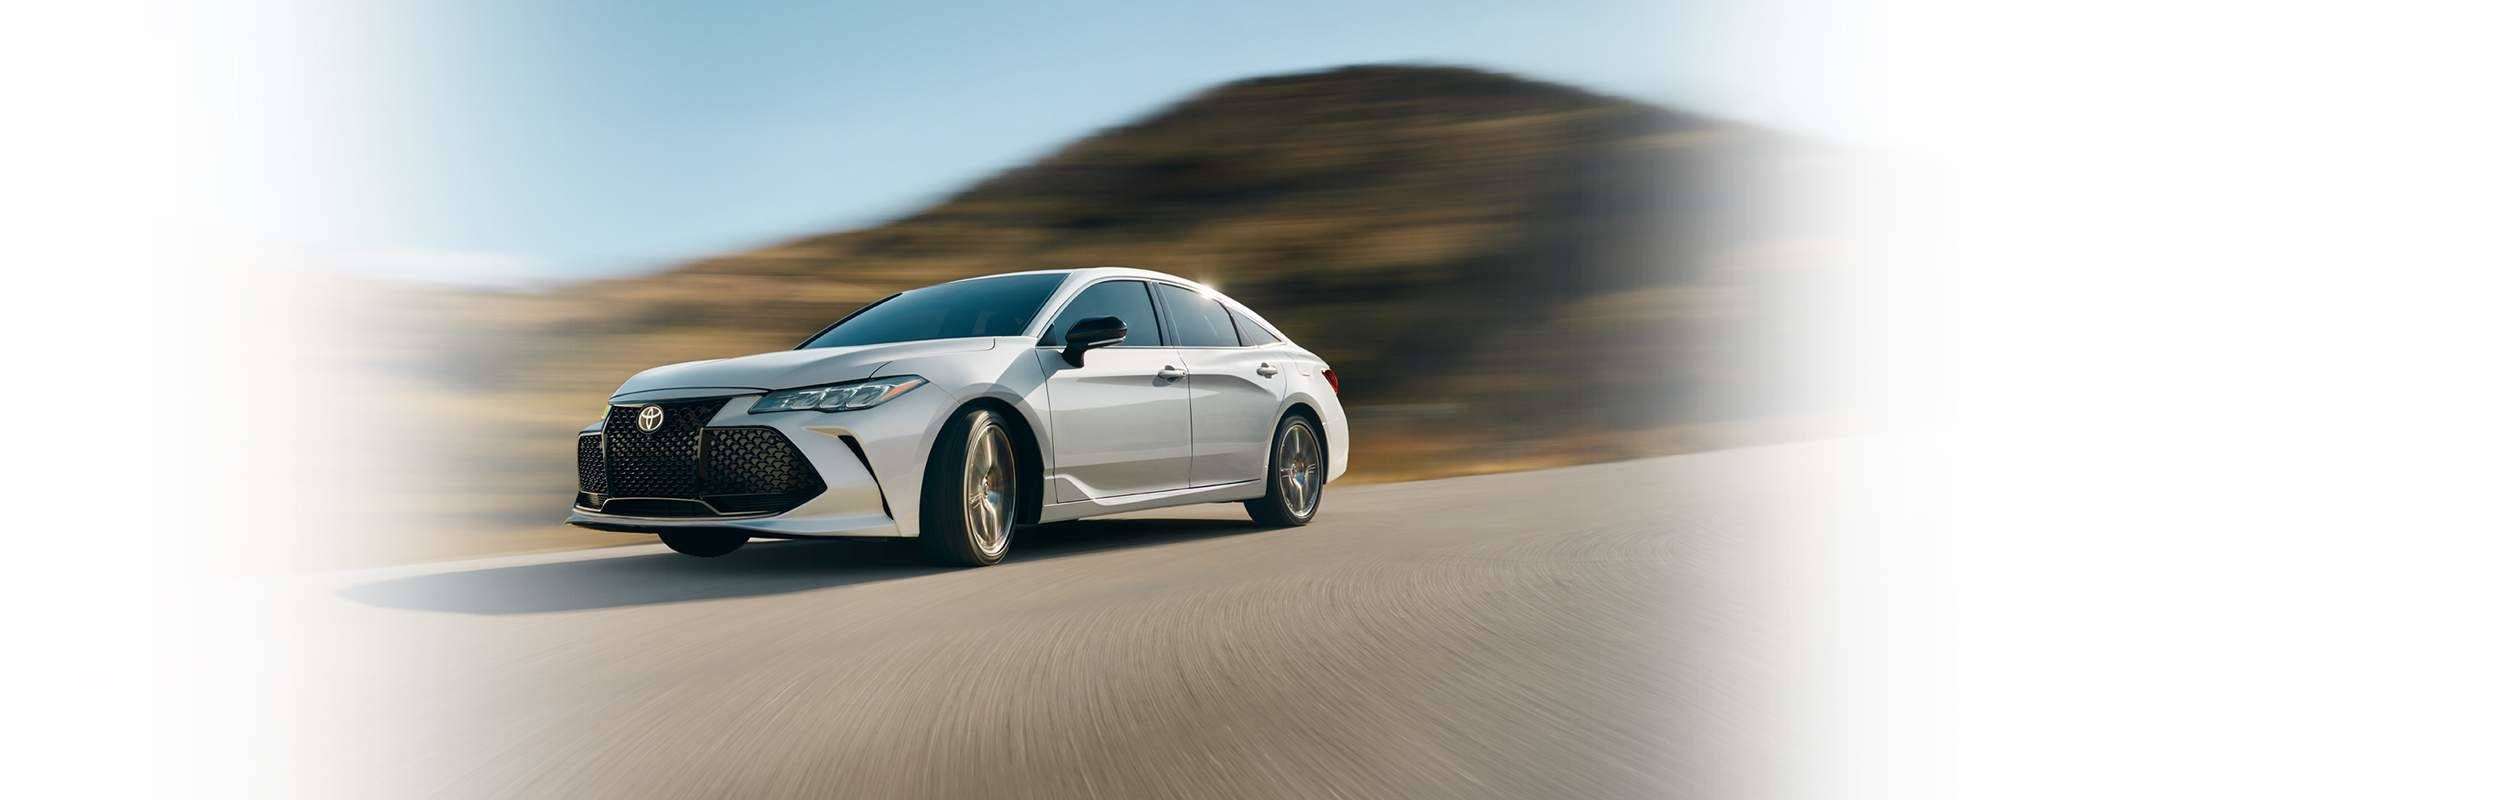 avalon first review drive of expert toyota